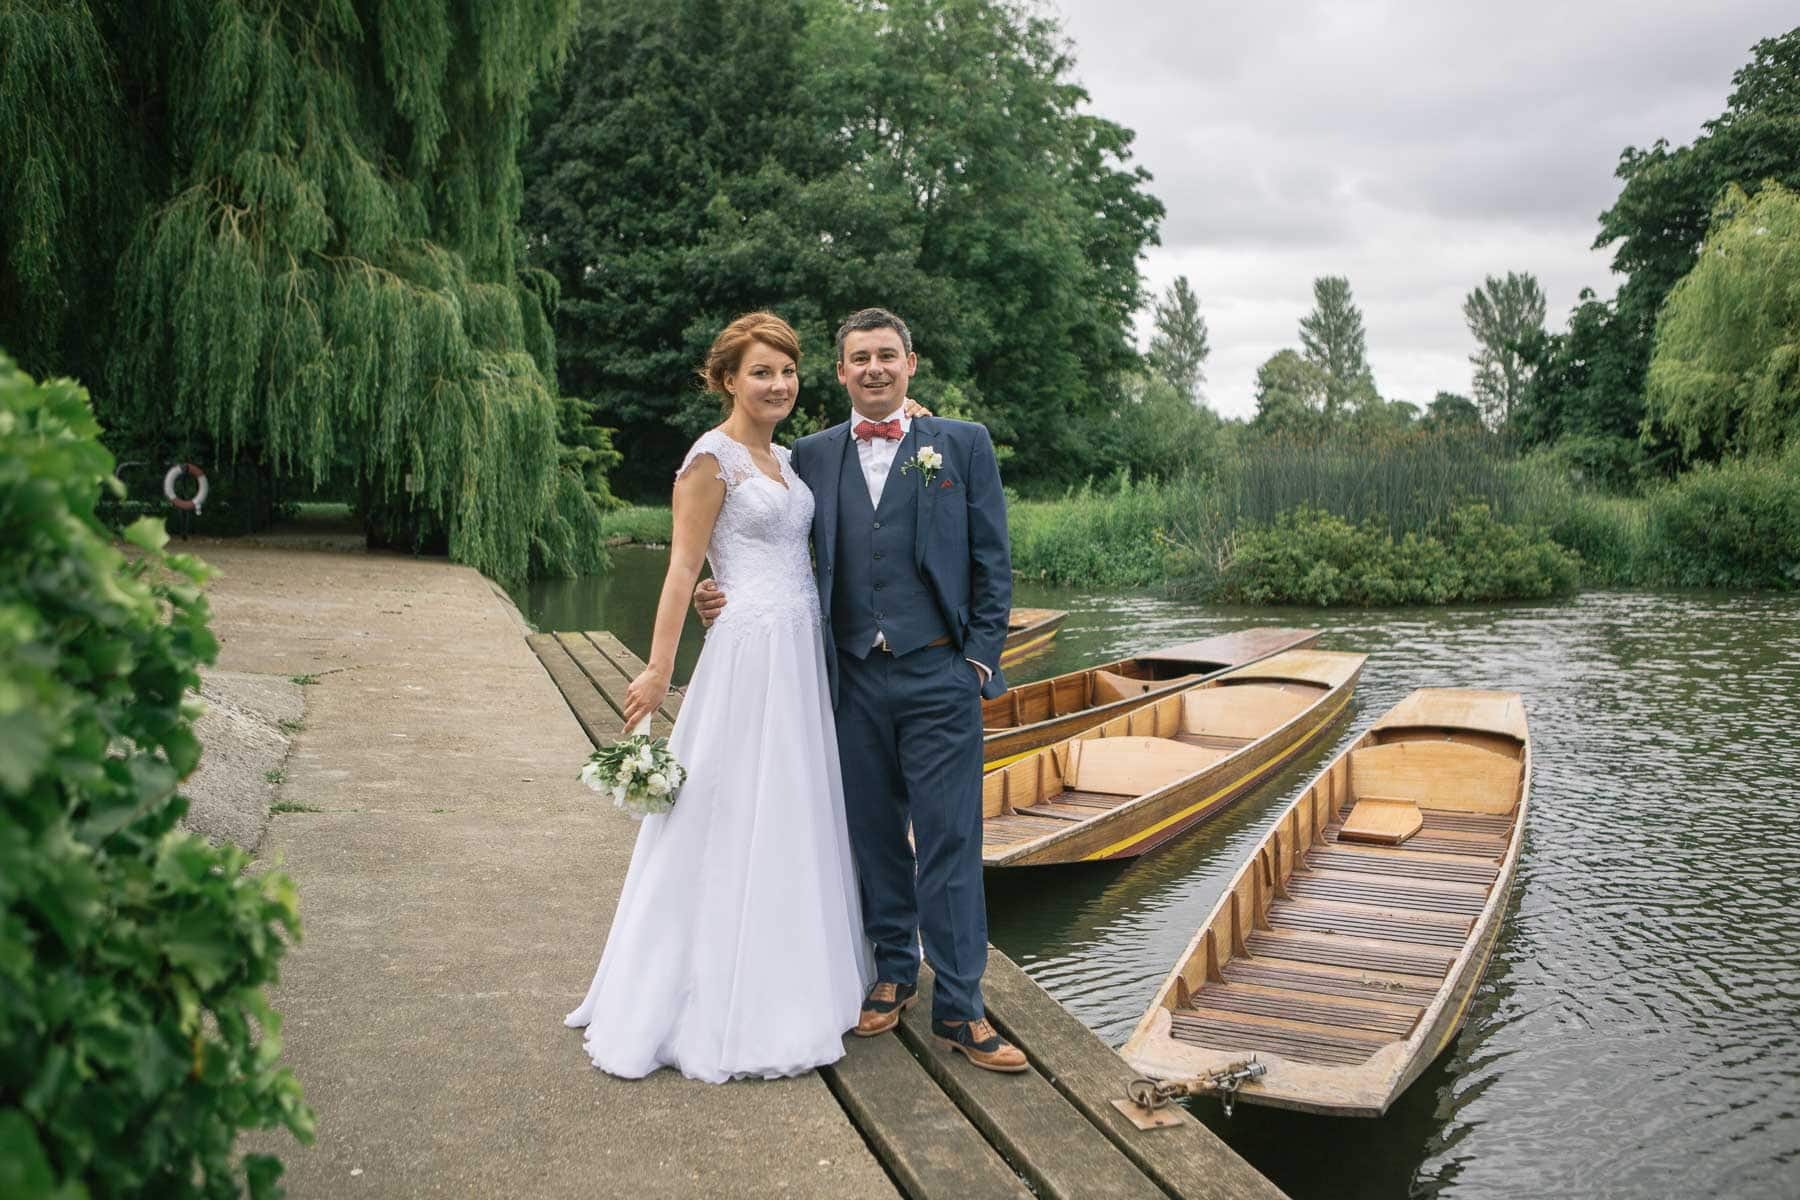 Bride and groom stand next to punts on the river